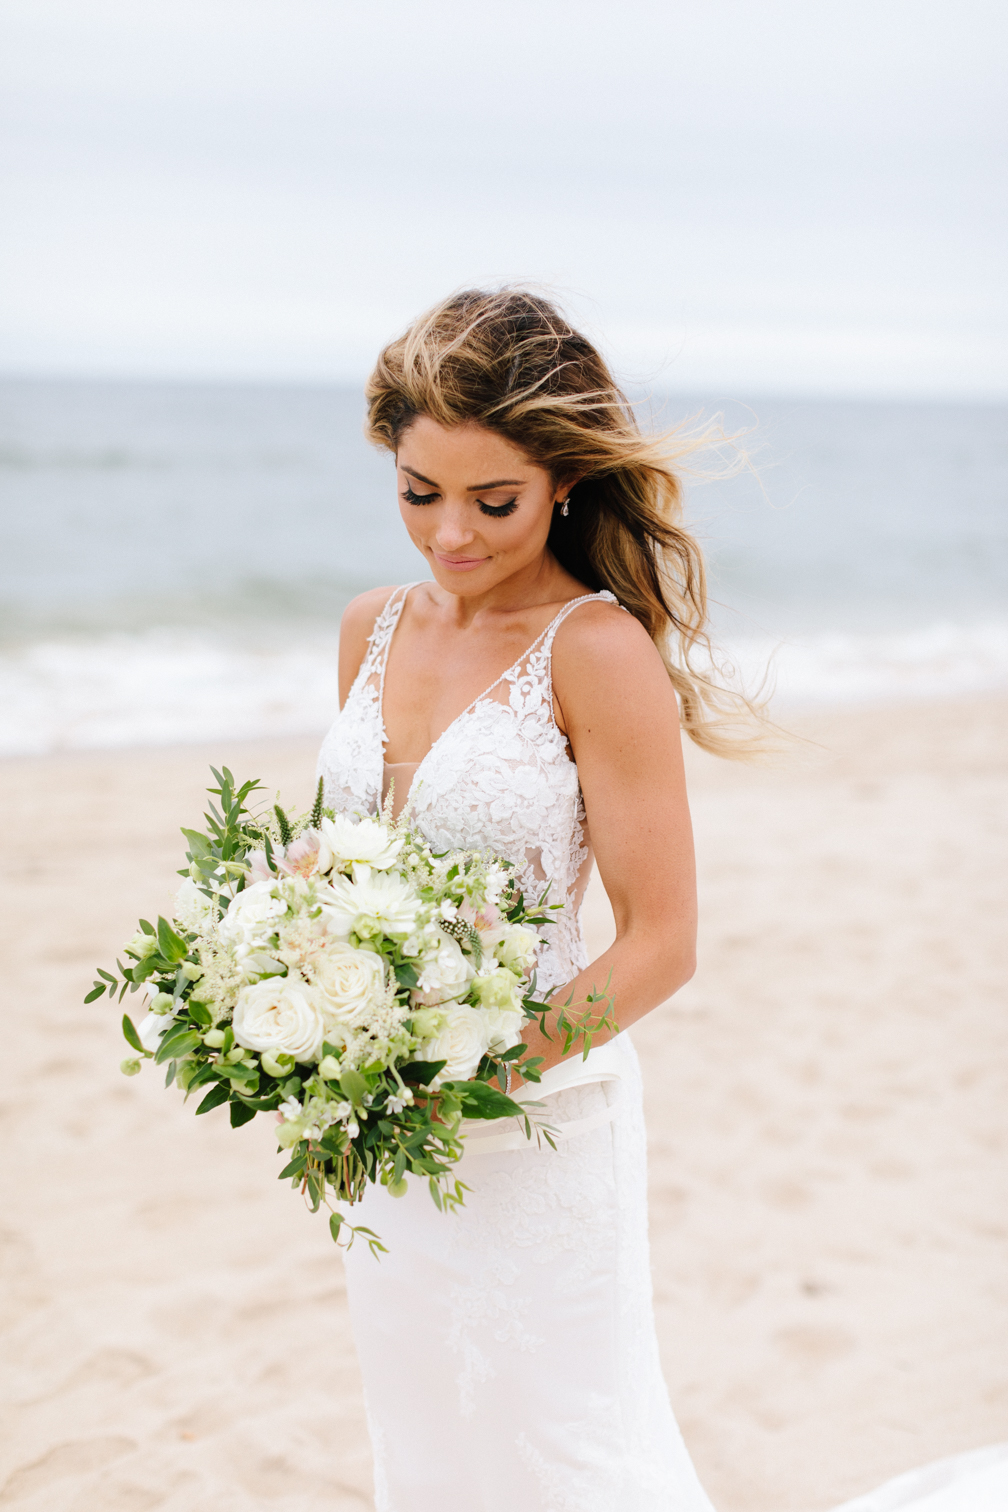 GURNEYS MONTAUK WEDDING_BETSI EWING_0016.JPG